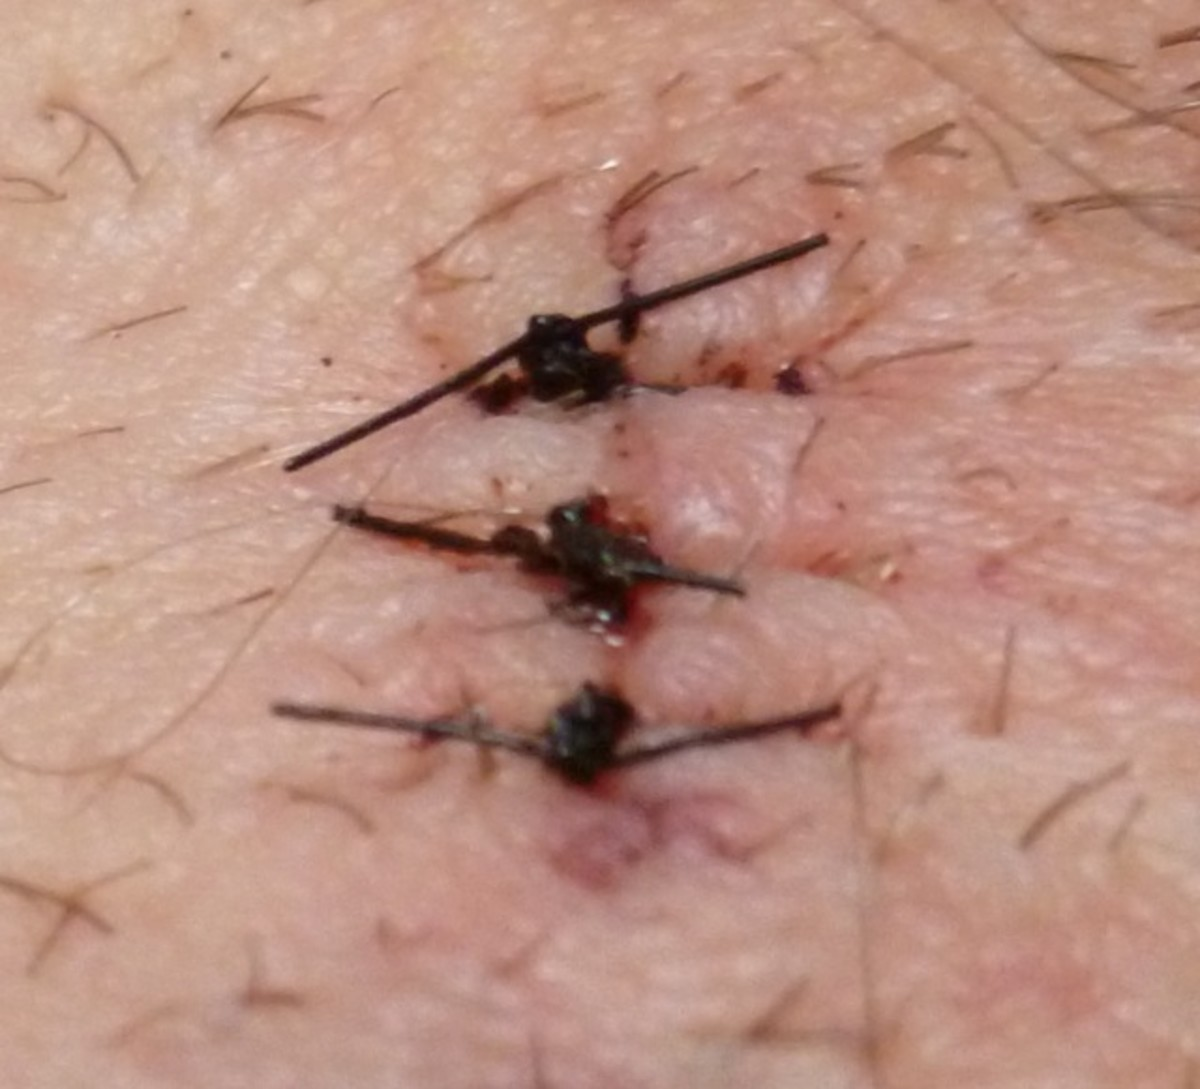 3 stitches for the pea sized cyst incision;